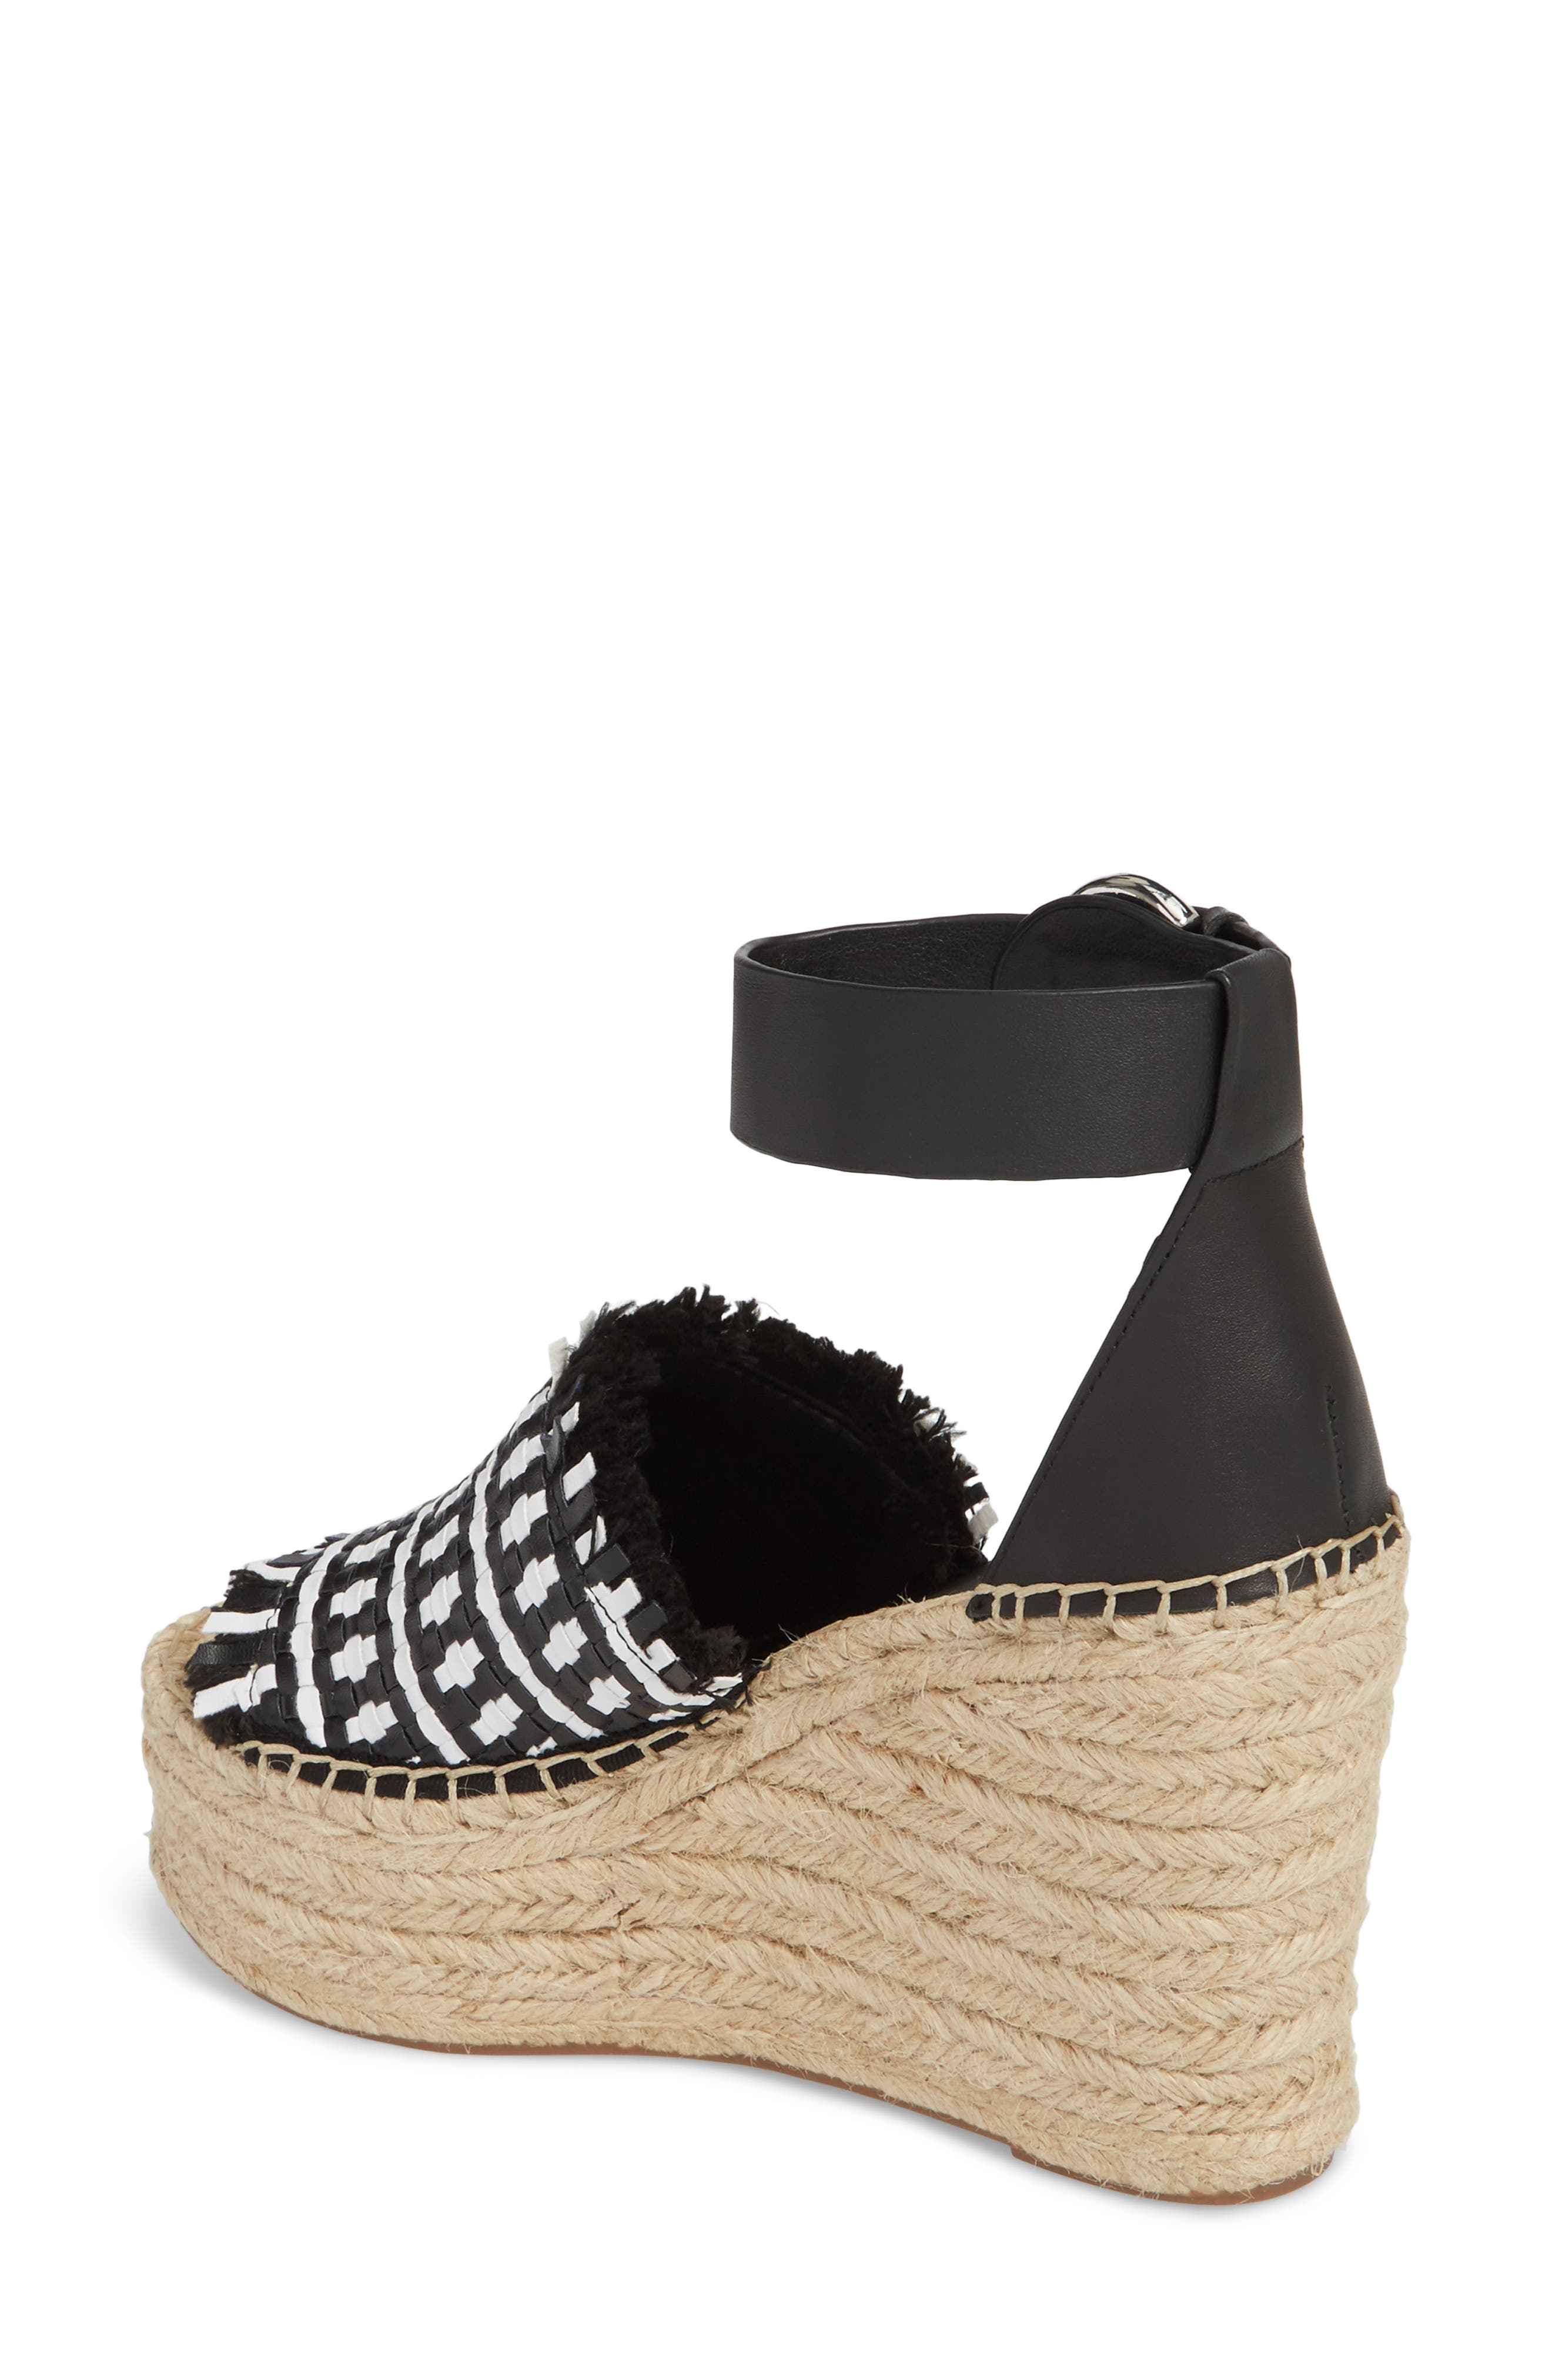 Andrew Espadrille Wedge Sandal,                             Alternate thumbnail 2, color,                             White/ Black Leather